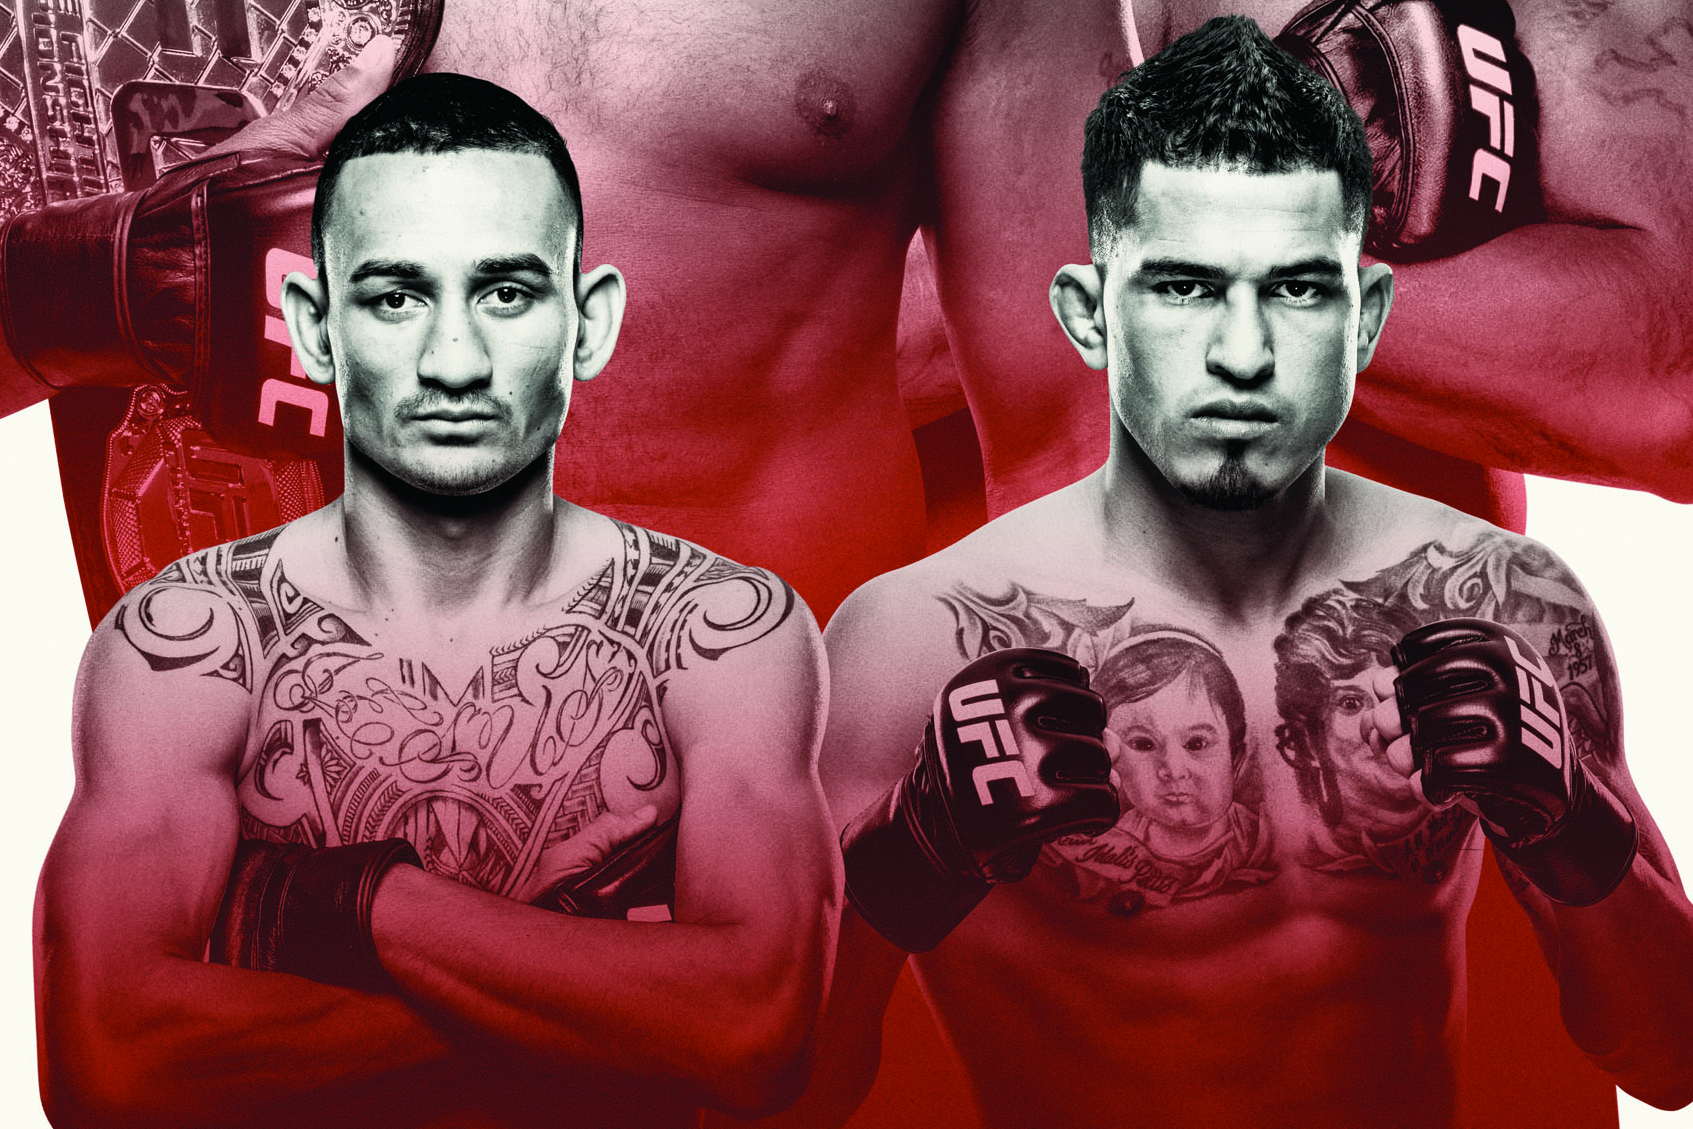 Max Holloway vs. Anthony Pettis Expected as New UFC 206 Championship Headliner